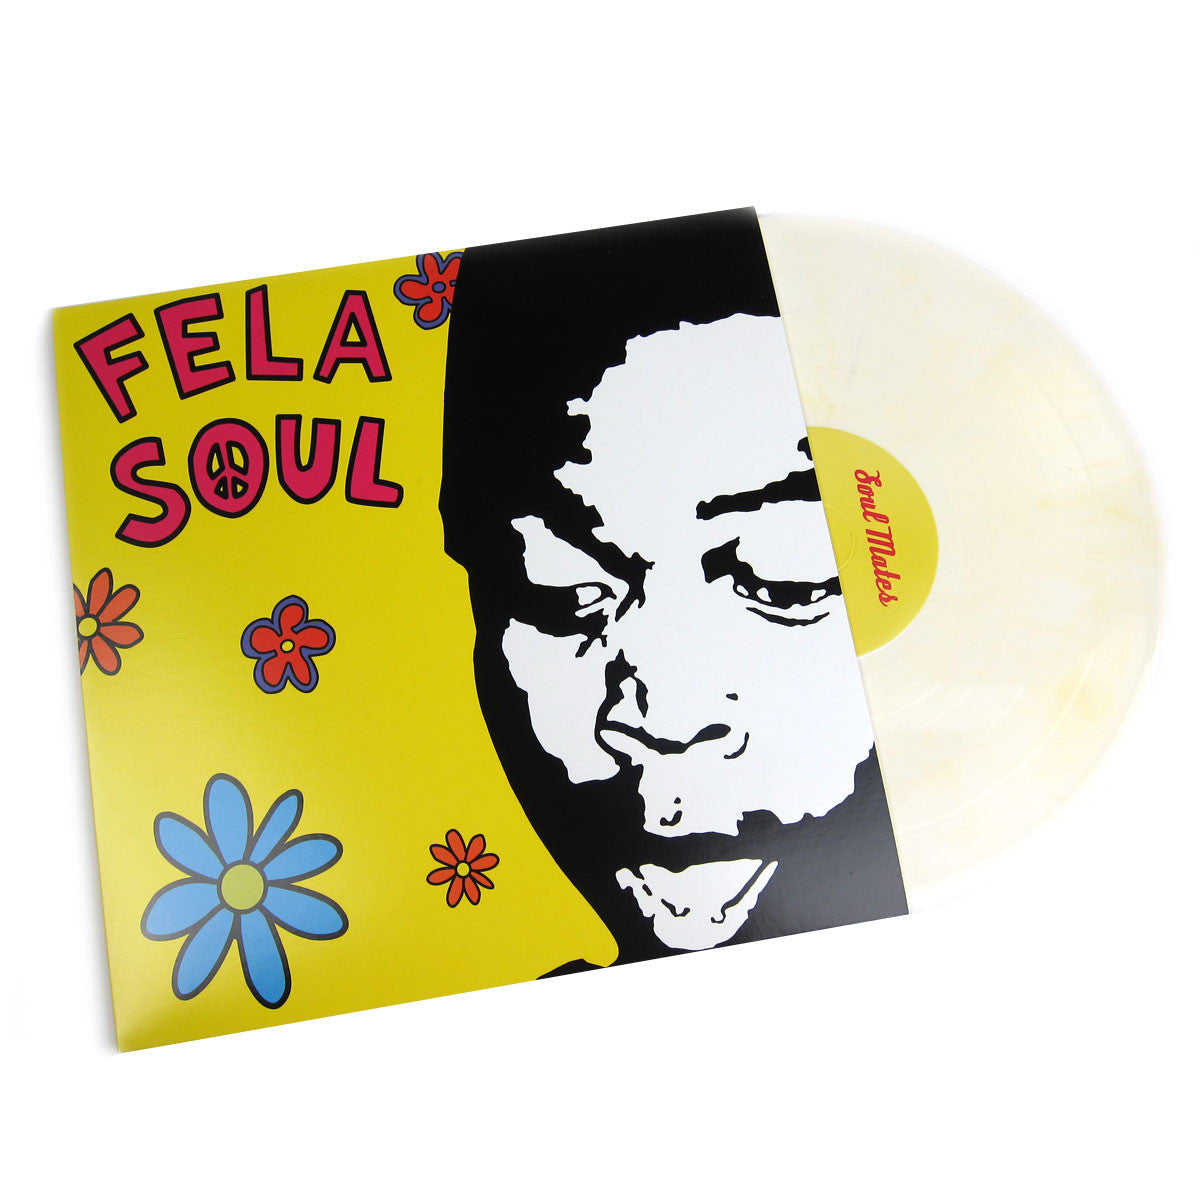 Fela Soul: Fela Kuti vs De La Soul (Colored Vinyl) Vinyl LP - Deluxe Edition